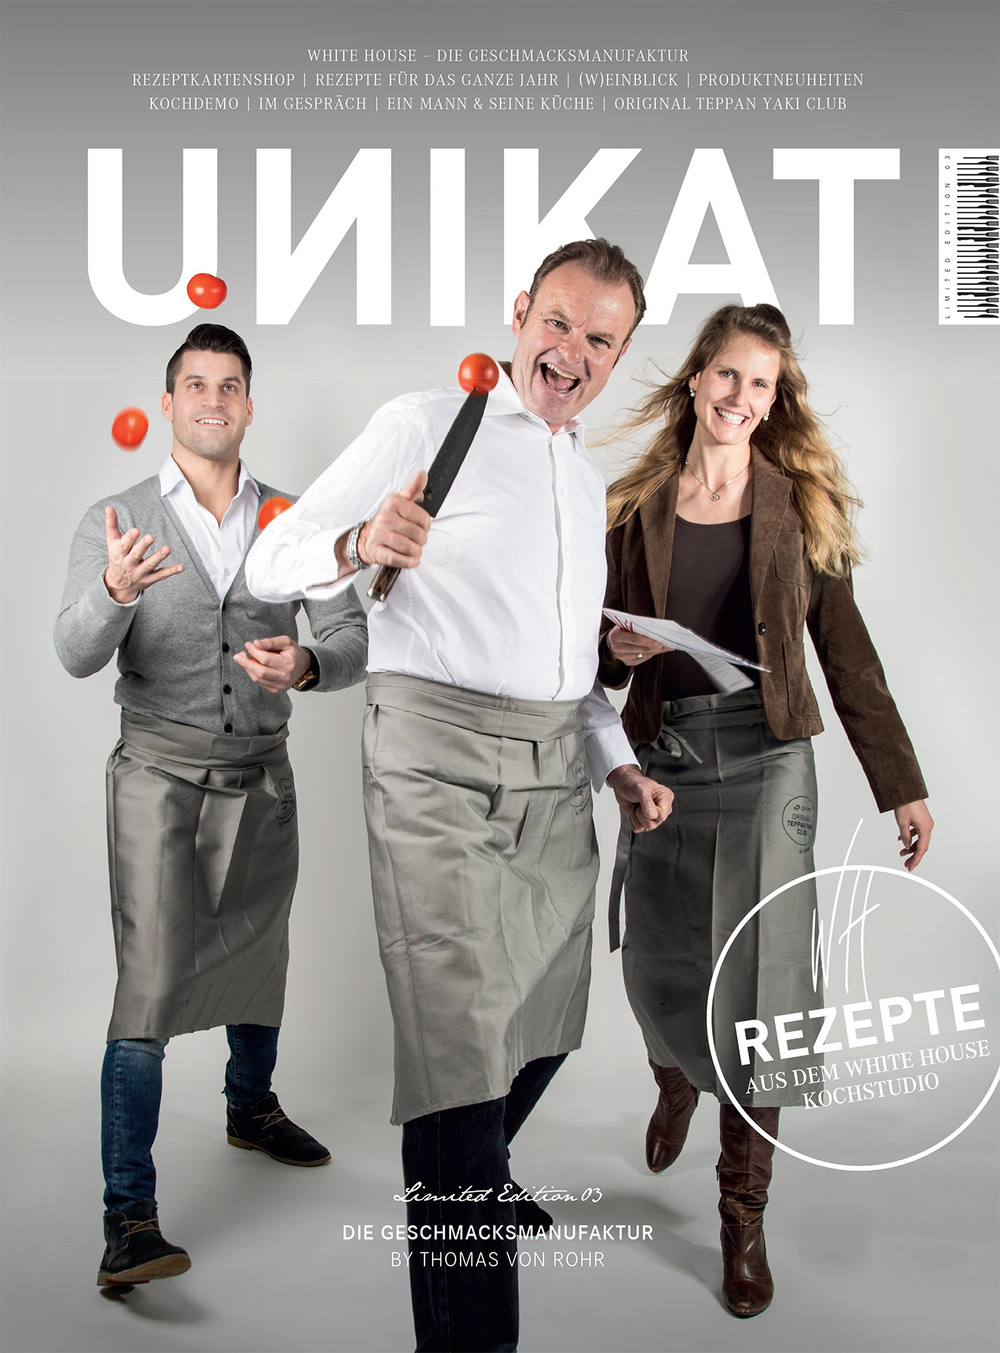 whitehouse-unikat-magazin-3-whitehouse